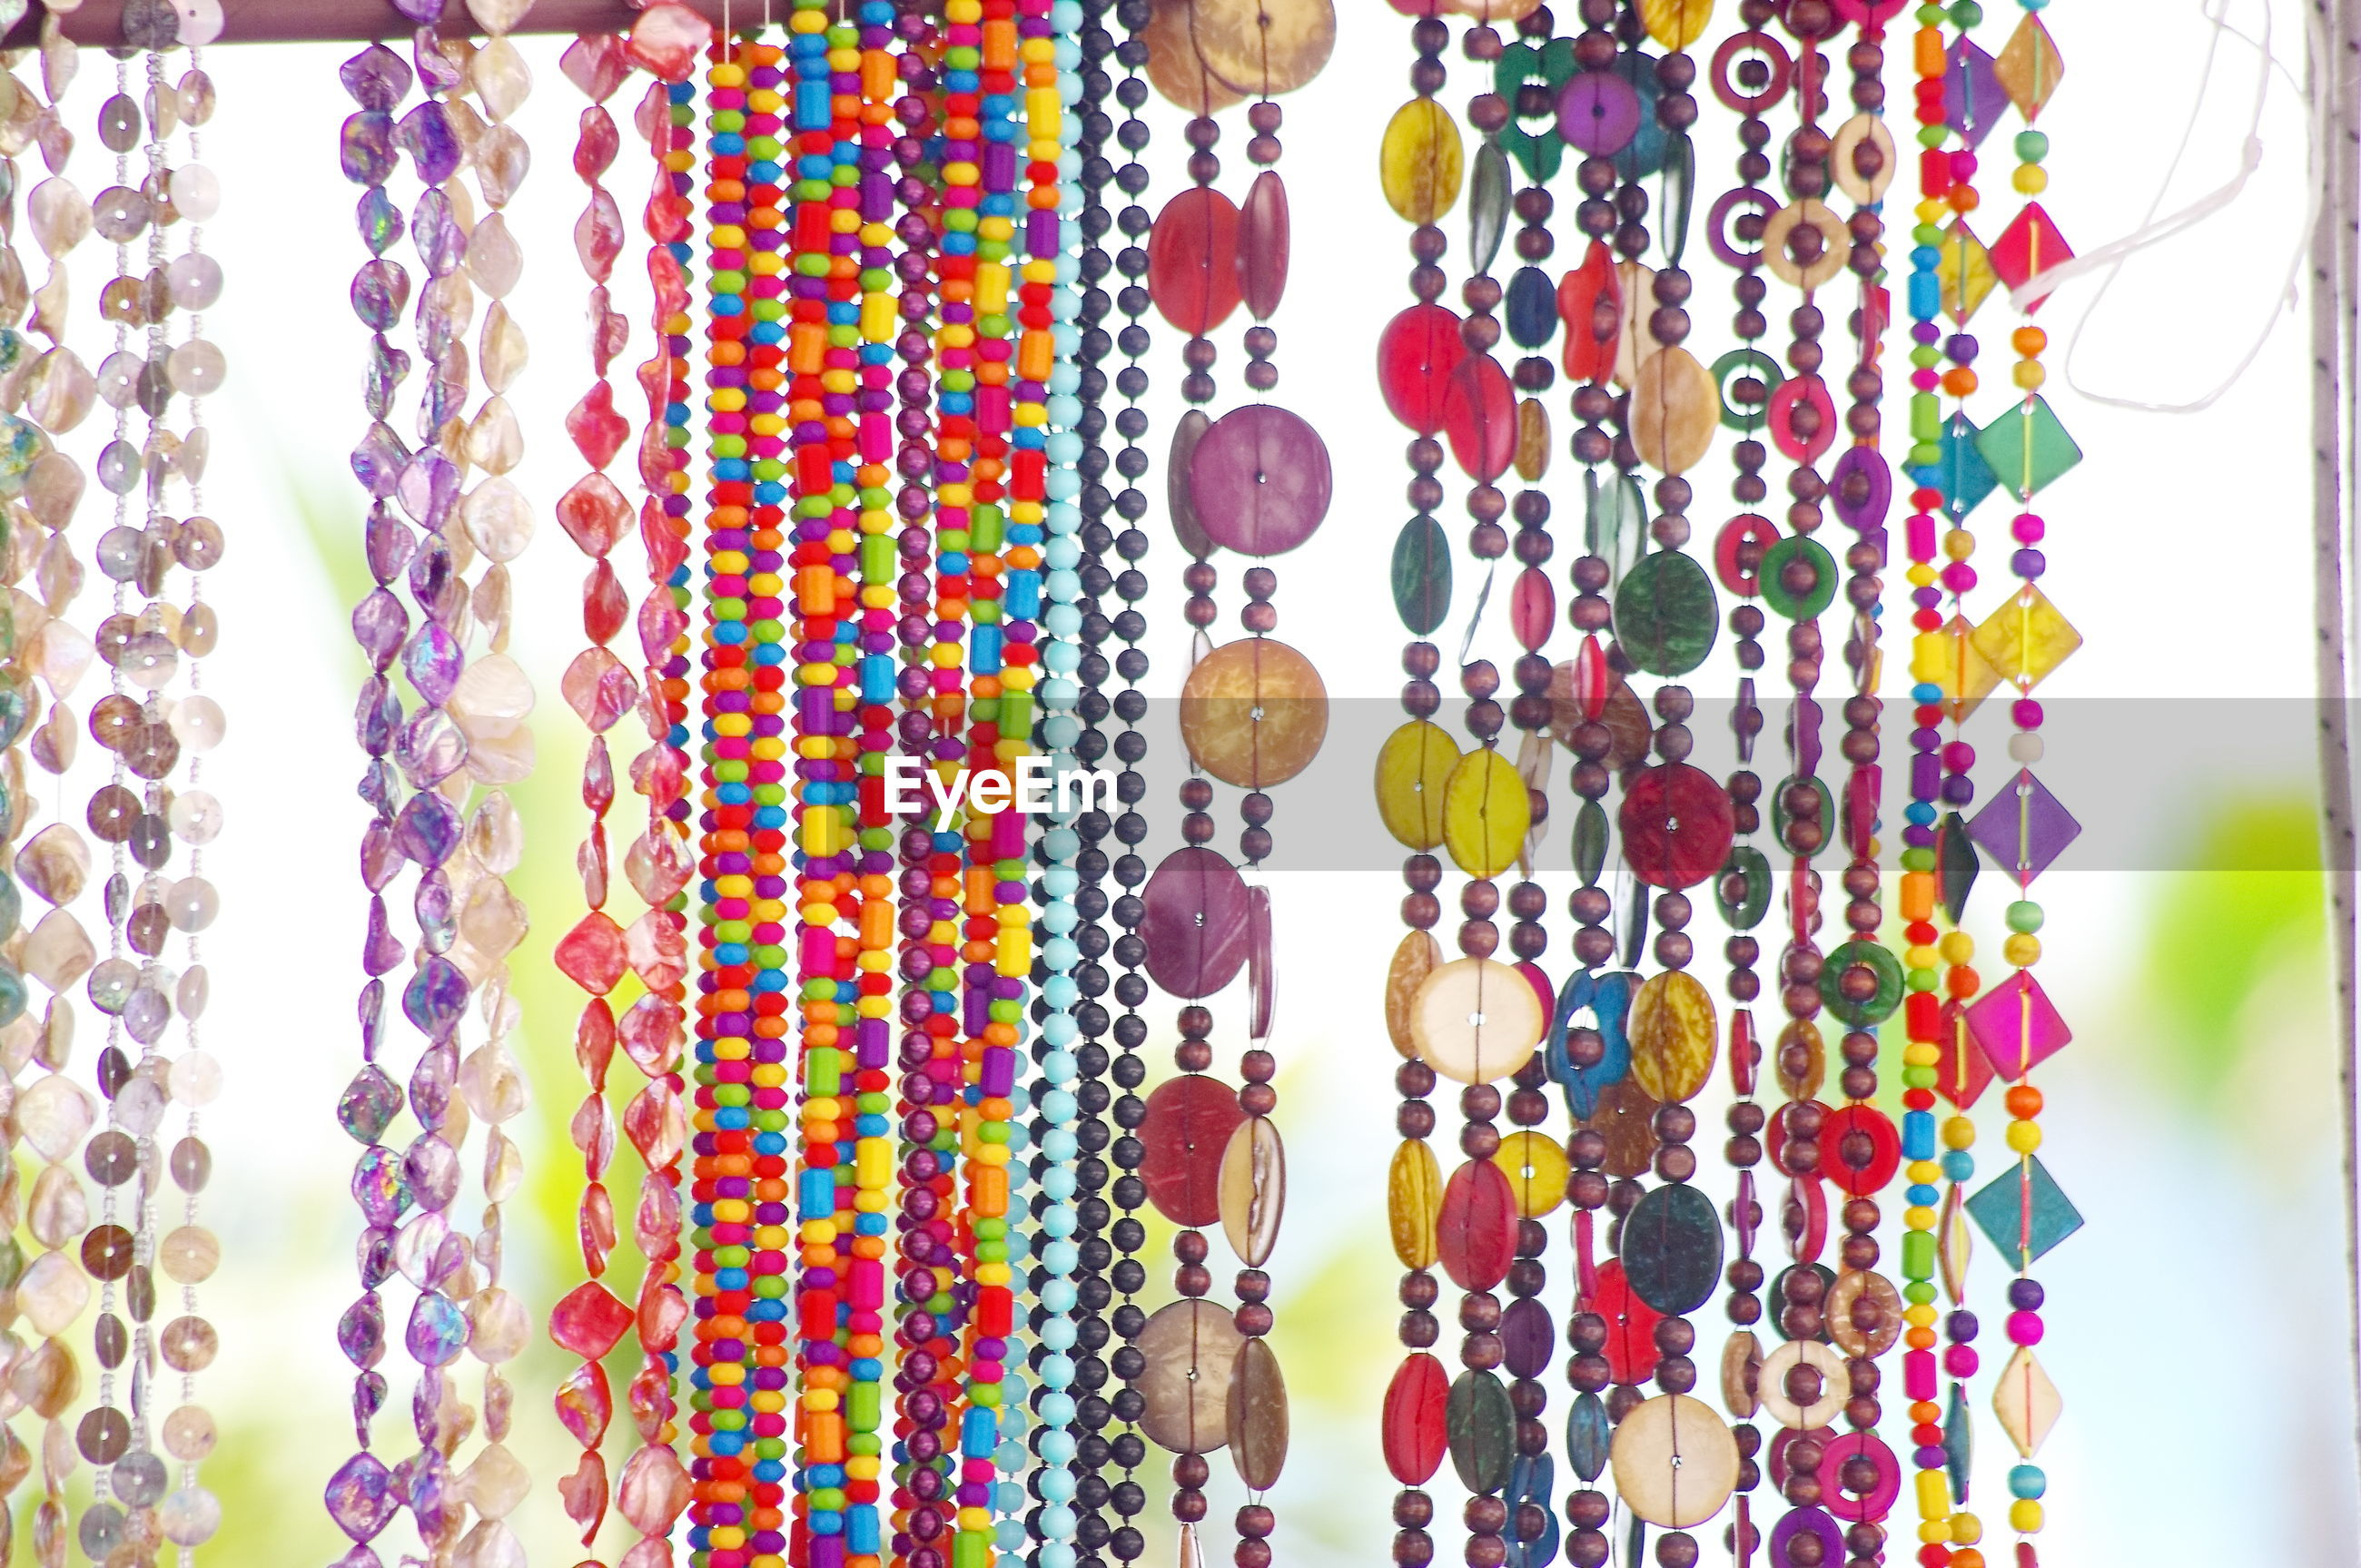 Various beads bracelets for sale at market stall